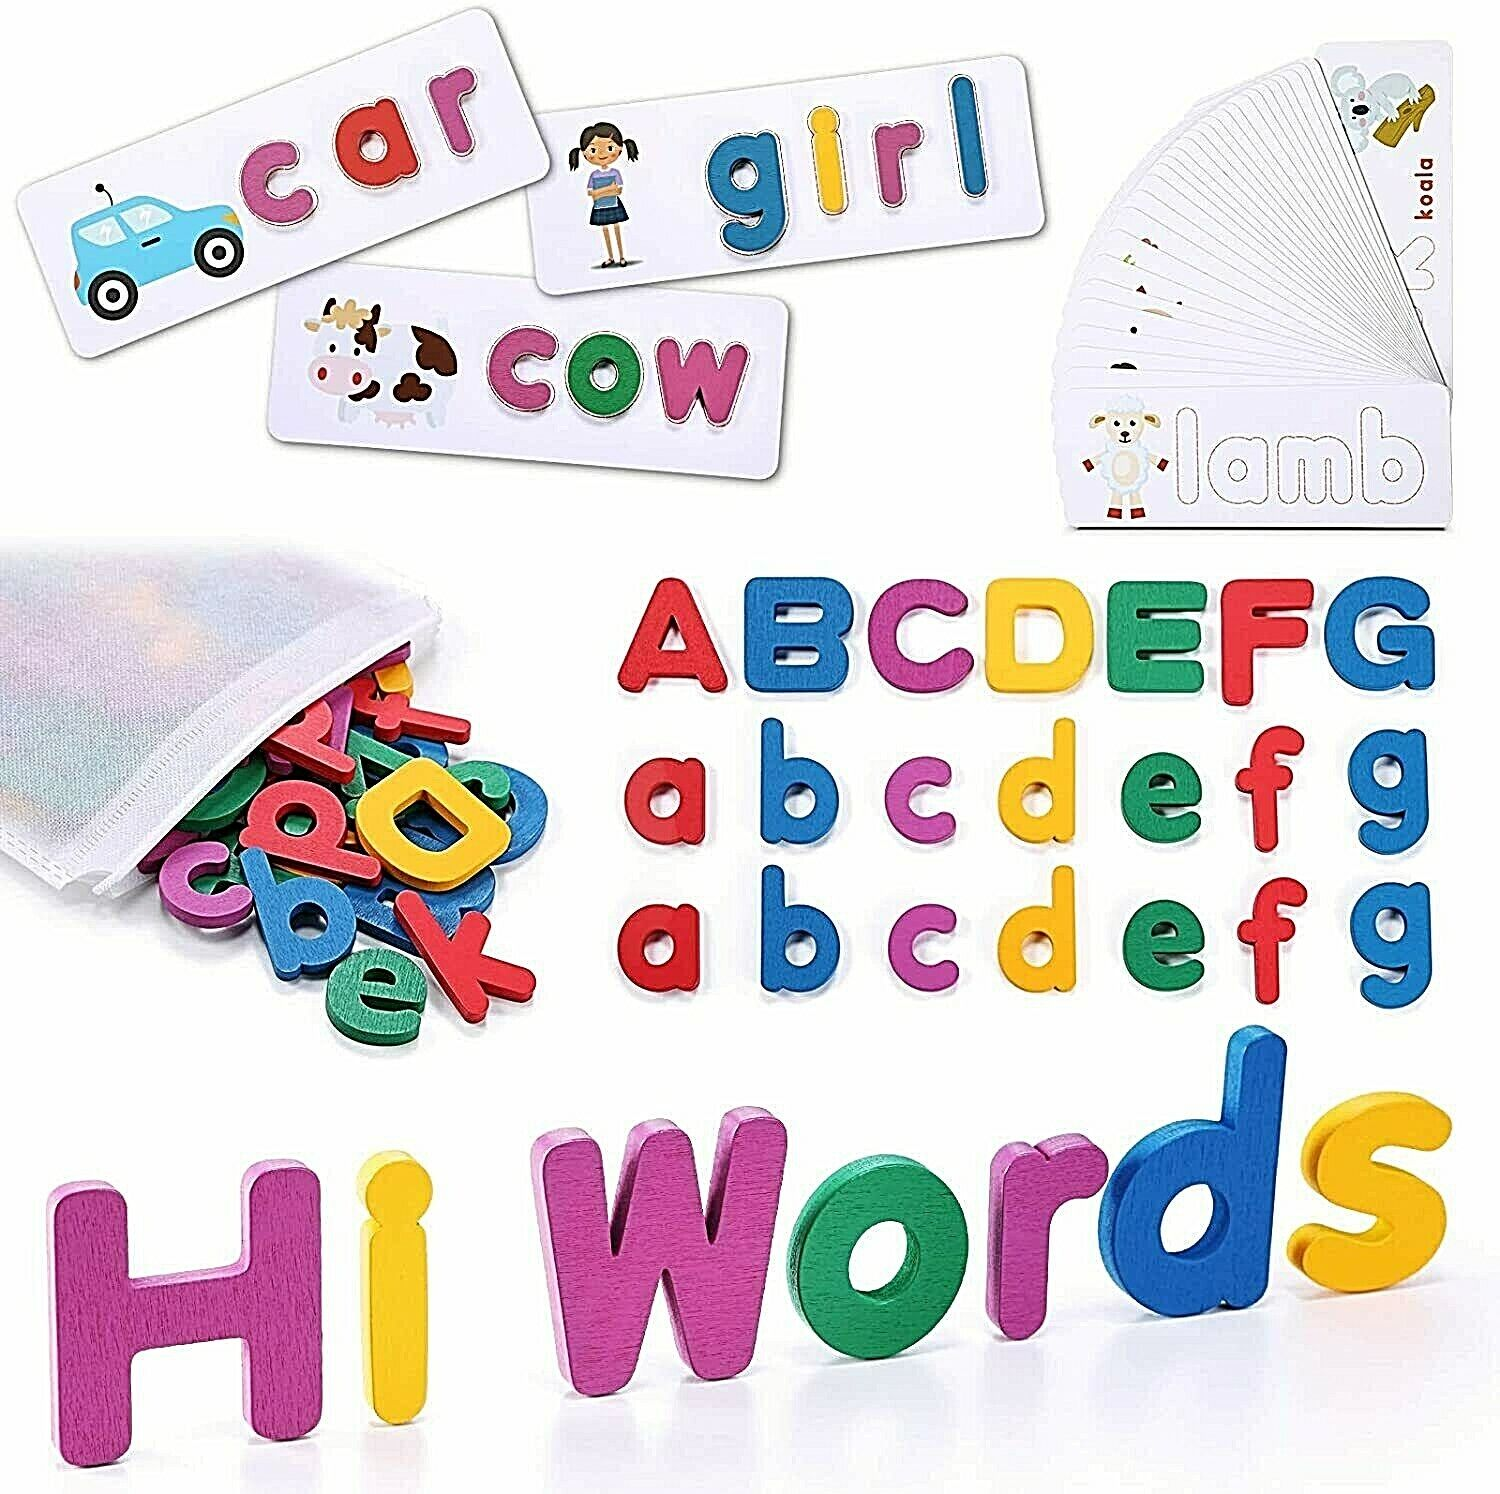 Kids Toys See and Spell Flash Cards Spelling Games Learning Toys for 2+ Year Old Educational